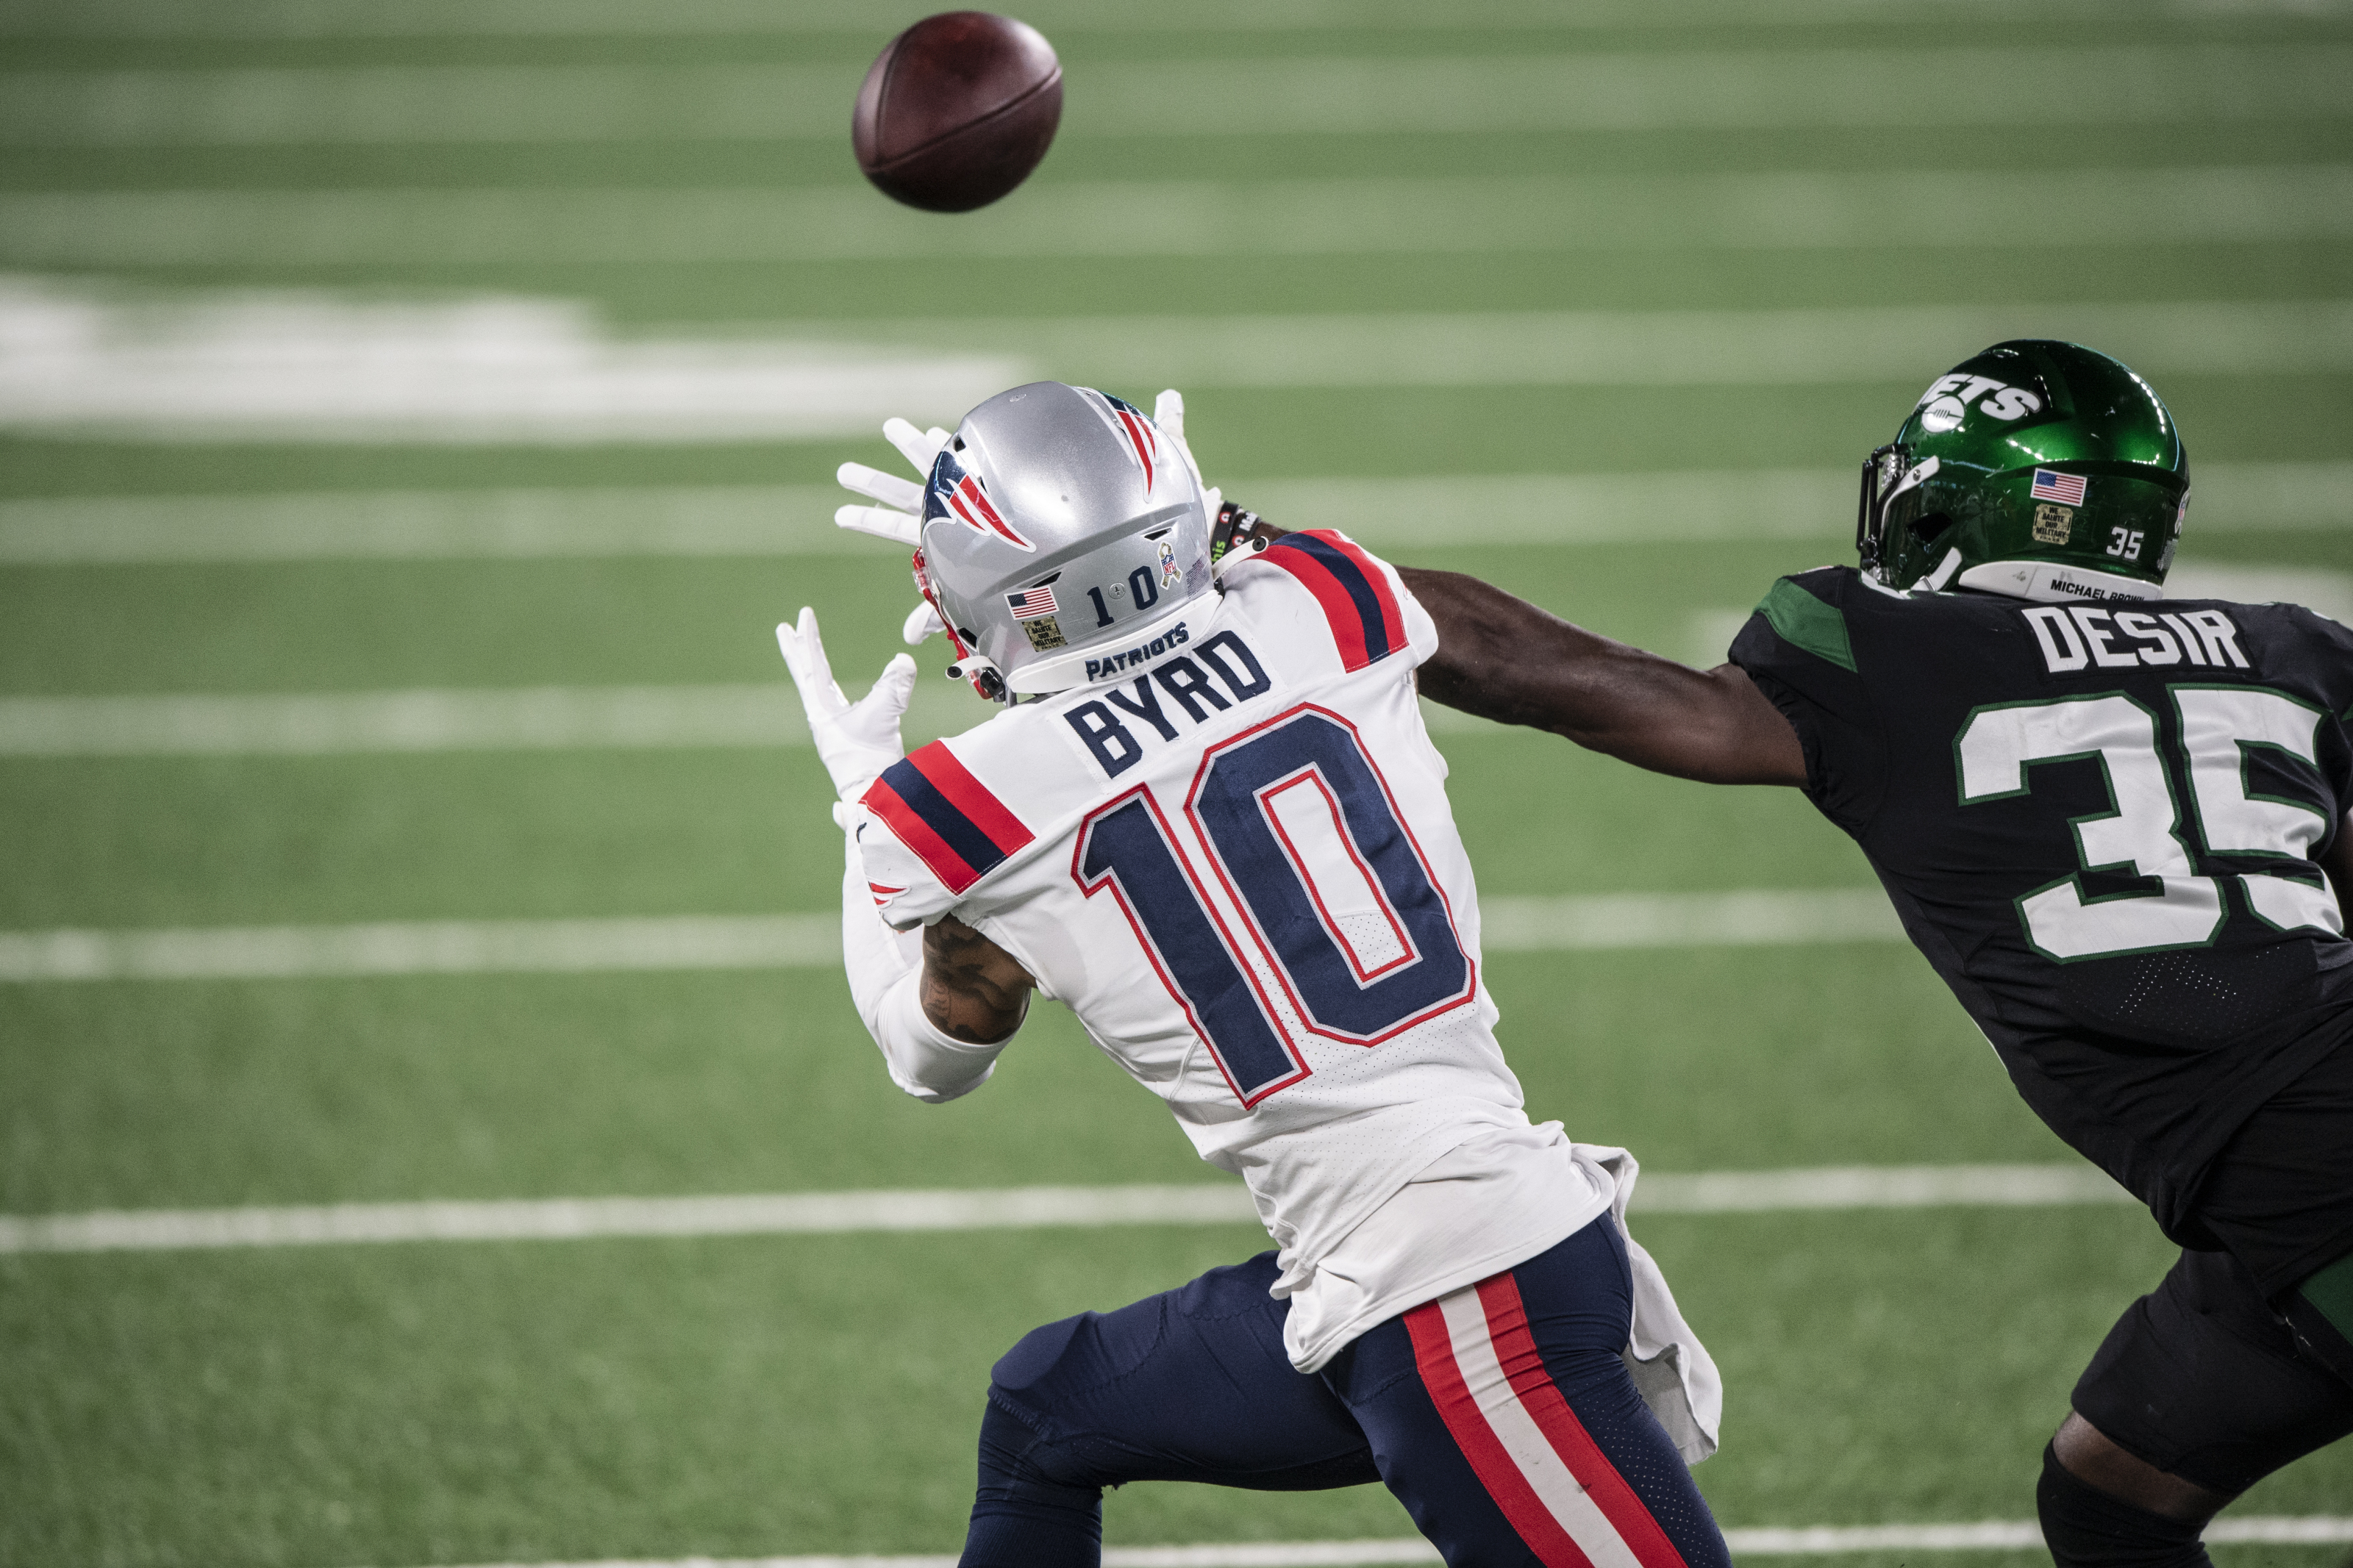 Patriots: Damiere Byrd knocked out by scary hit vs Jets